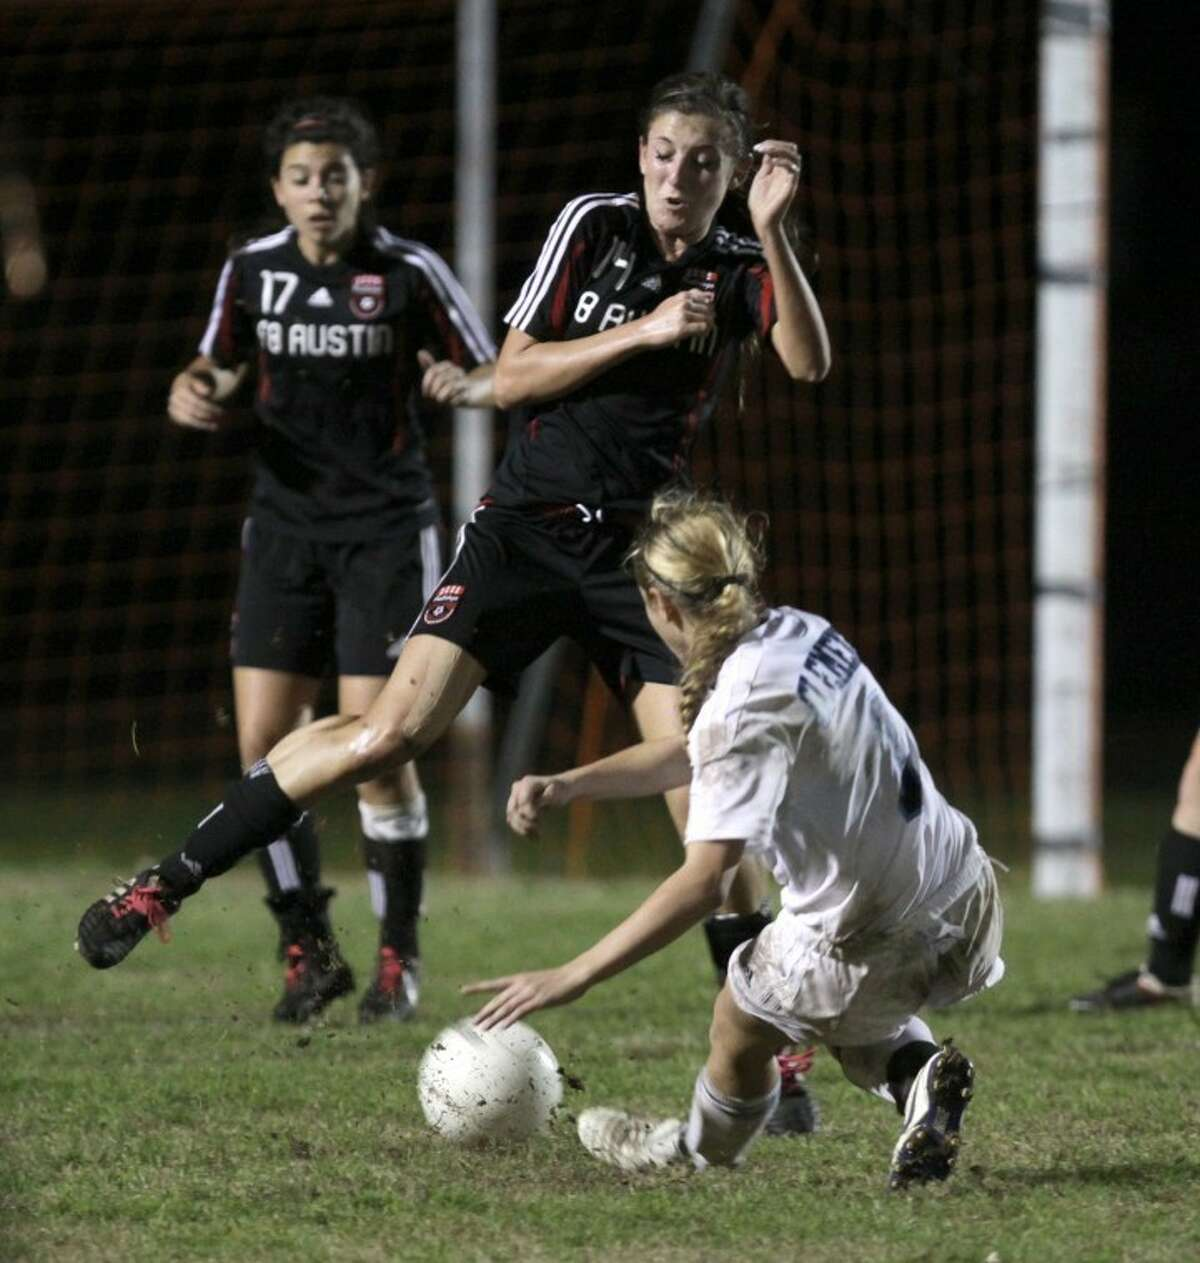 Austin's Kara Byrne braces for C.C. Cole's shot during Friday's game at Kempner Stadium. (Photo by Alan Warren)